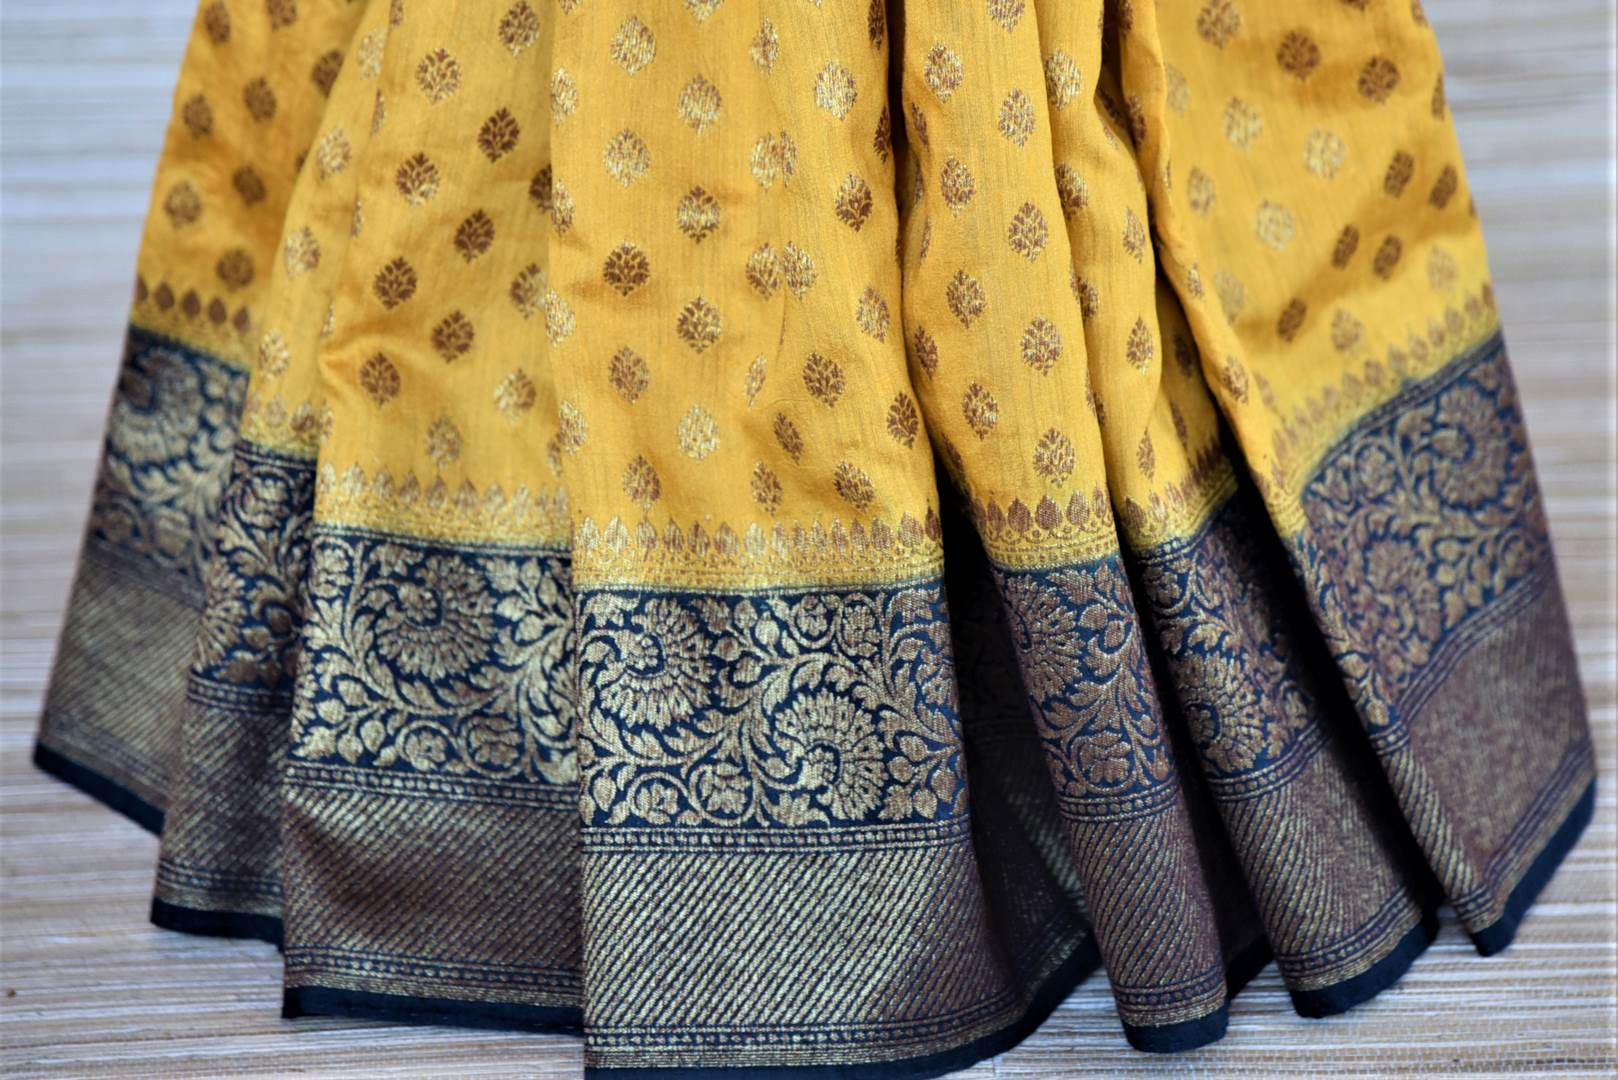 Buy stunning yellow muga Banarasi saree online in USA with blue antique zari border. Be an epitome of ethnic Indian fashion with traditional Banarasi sarees, georgette saris from Pure Elegance fashion store in USA.-pleats